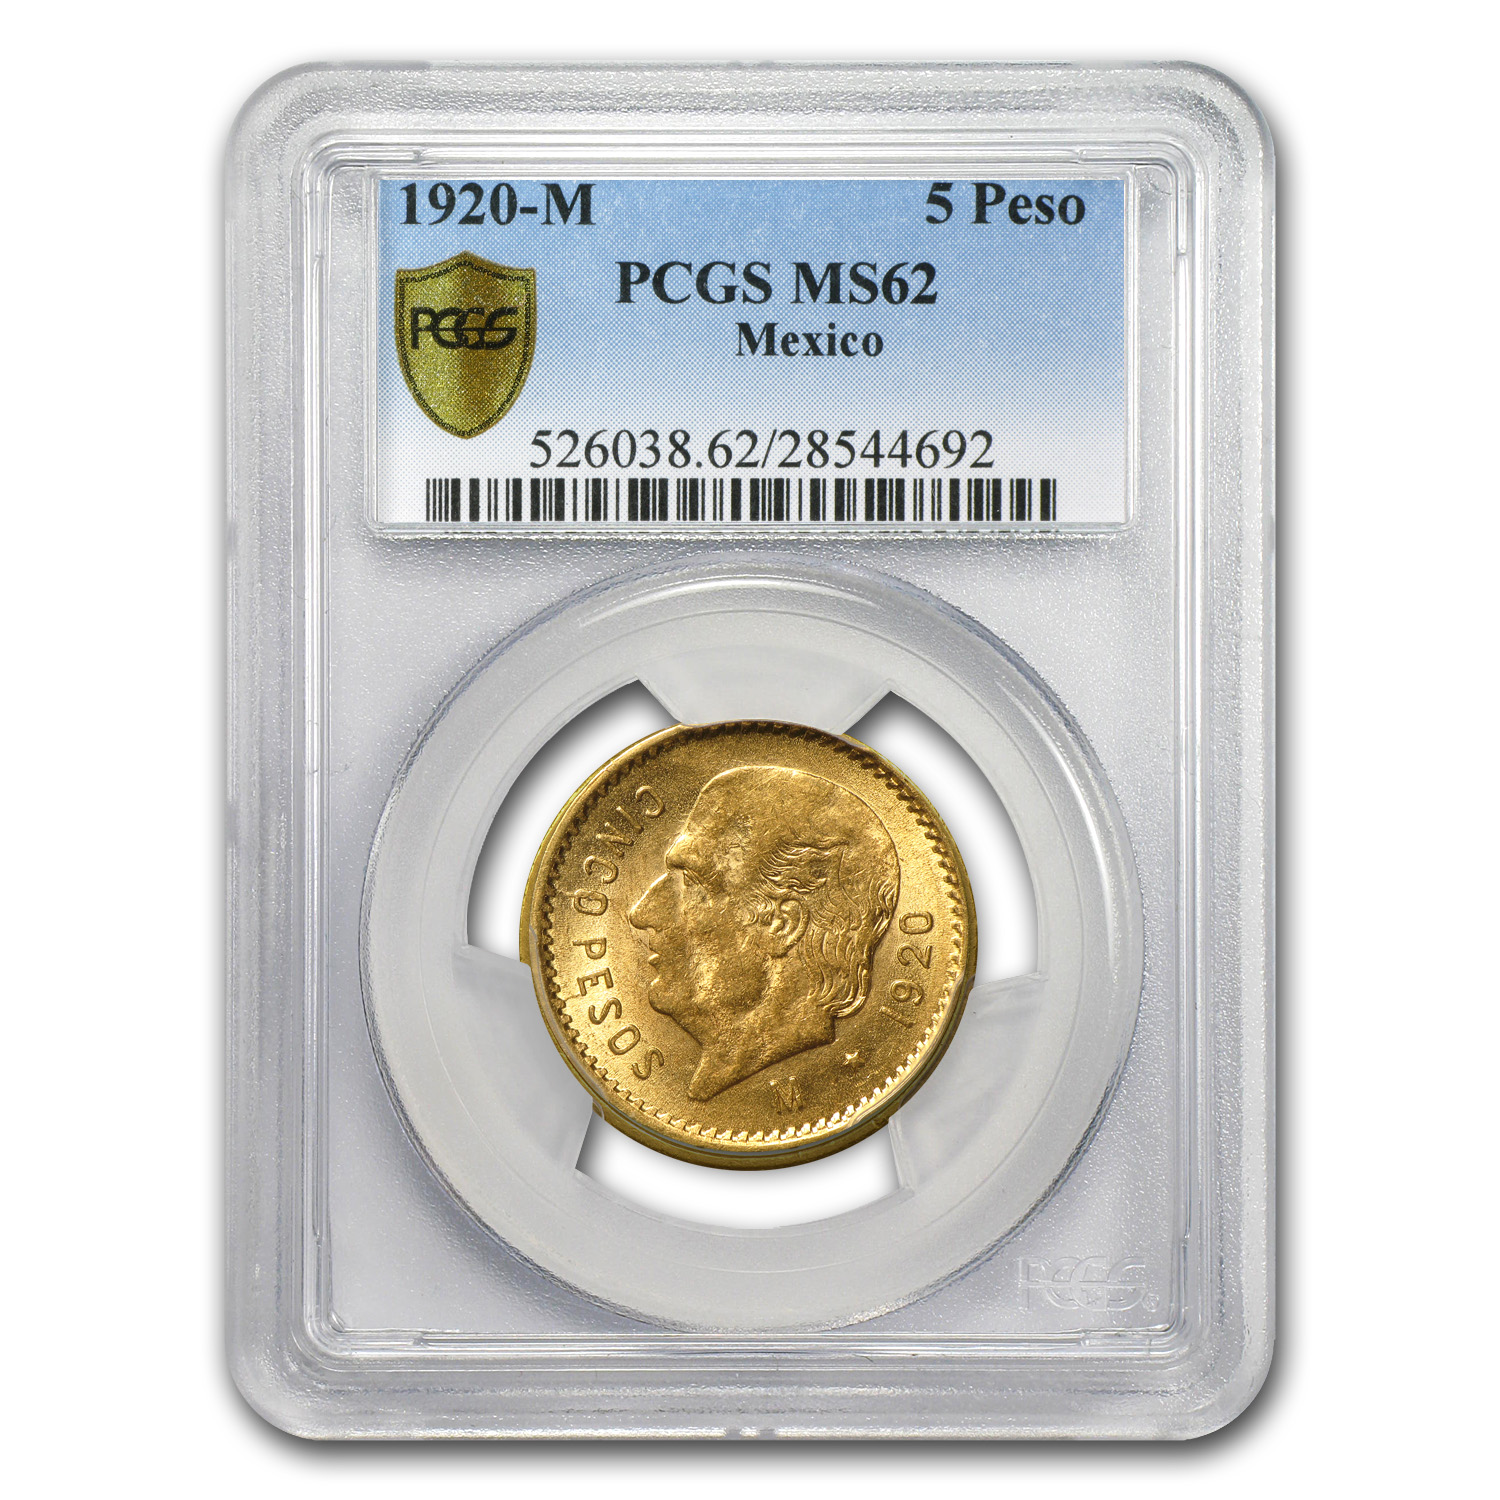 Mexico 1920 5 Pesos Gold Coin - MS-62 PCGS